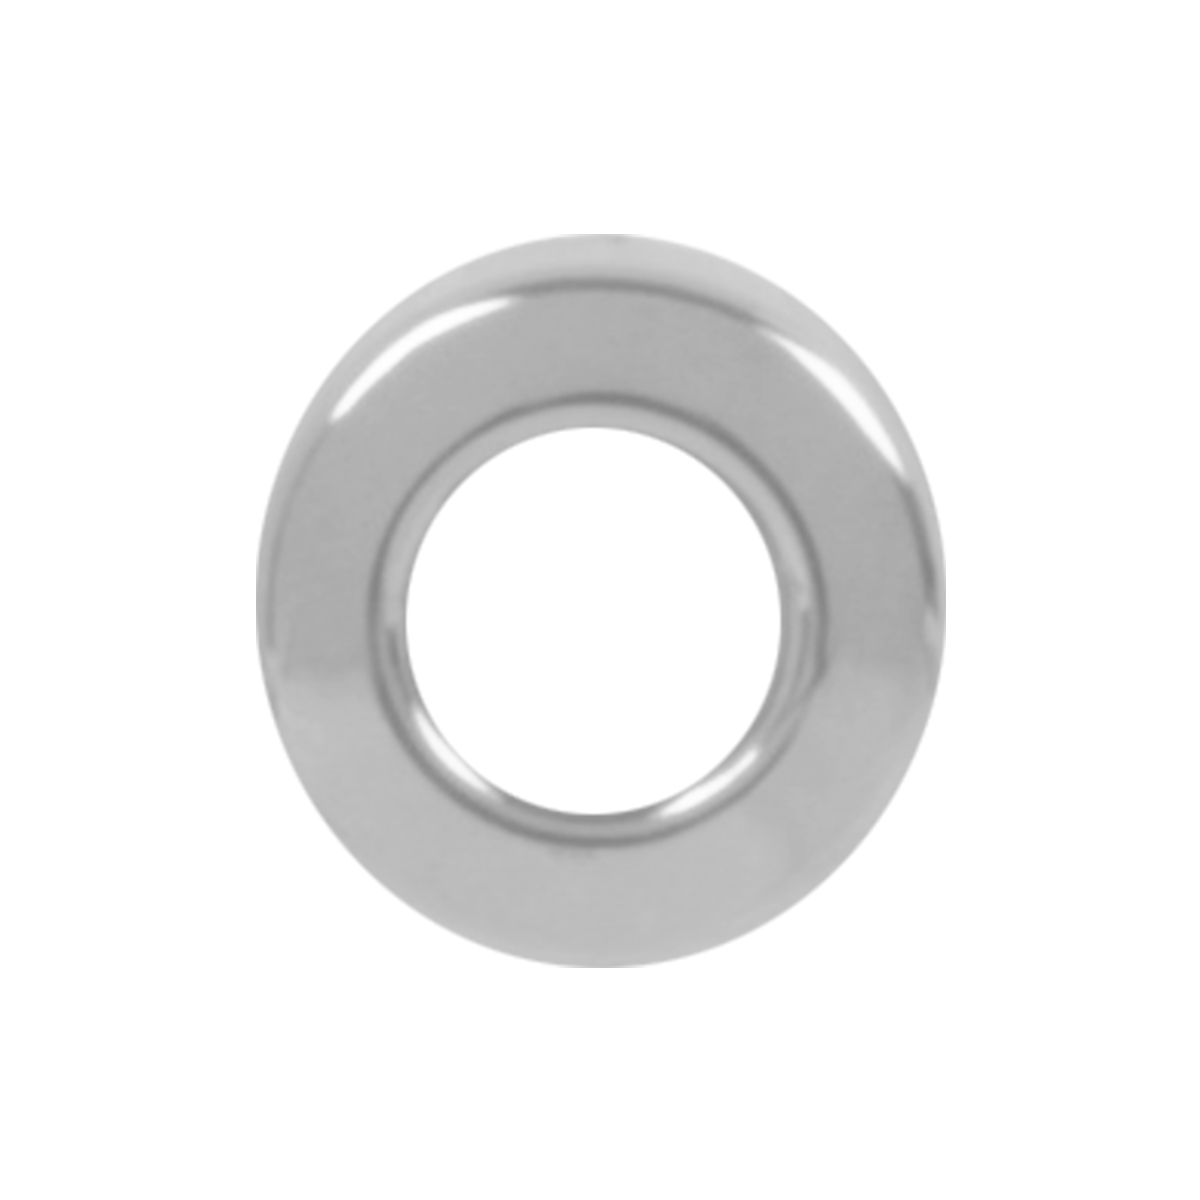 67260 KW Chrome Plastic Toggle Switch Face Nut Cover